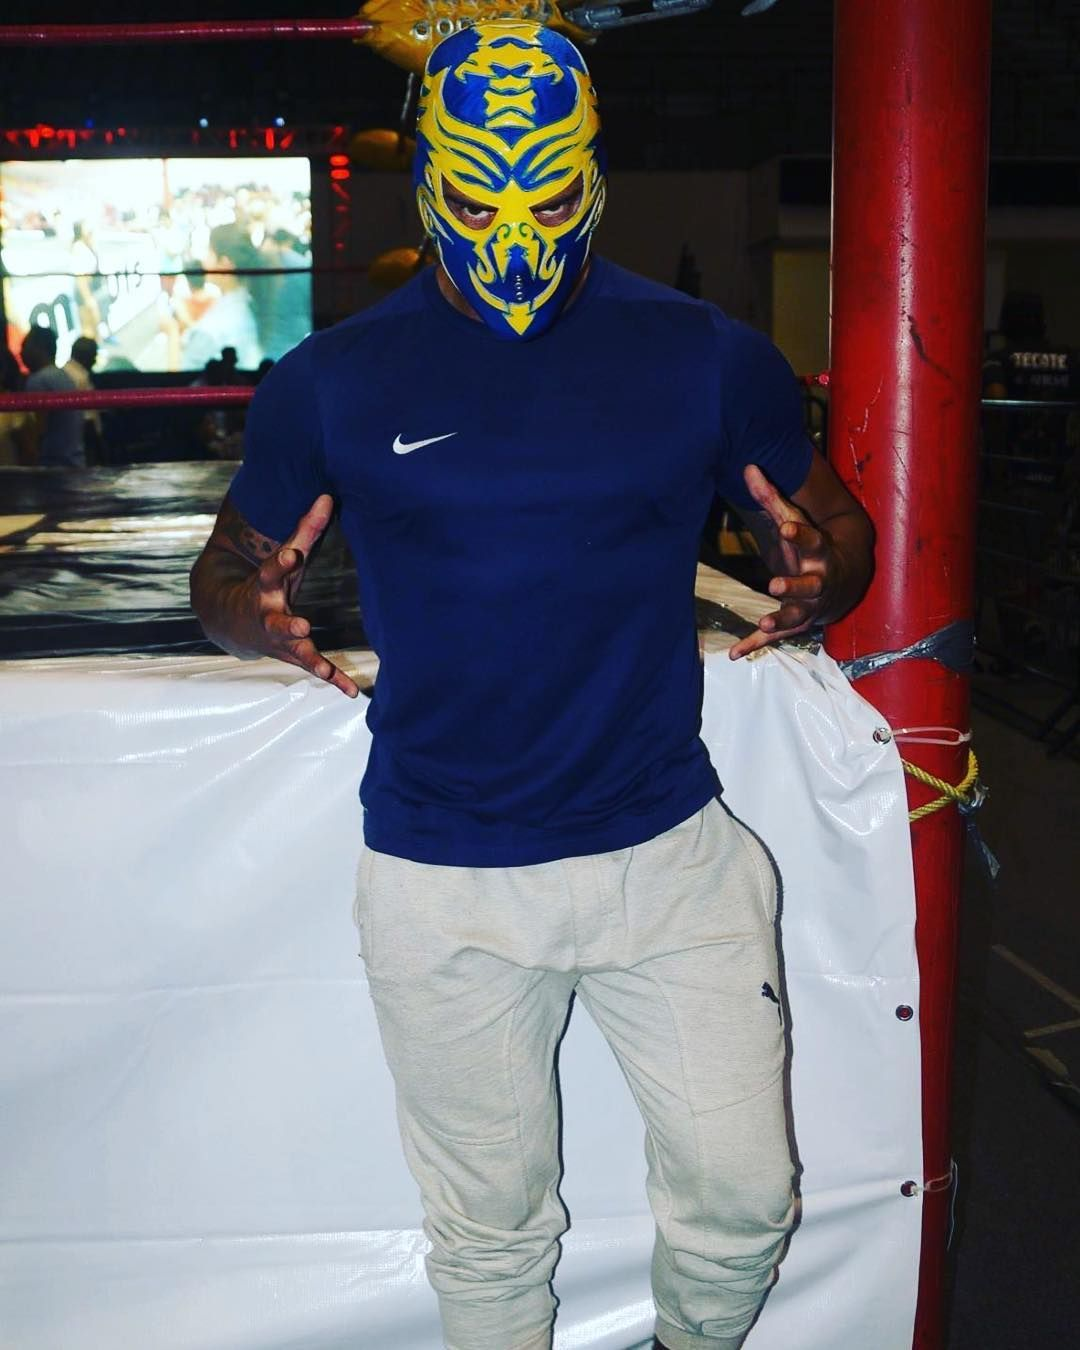 Lucha Libre Youtube Watch The Best Youtube Videos Online Zumbibrasil Wrestler